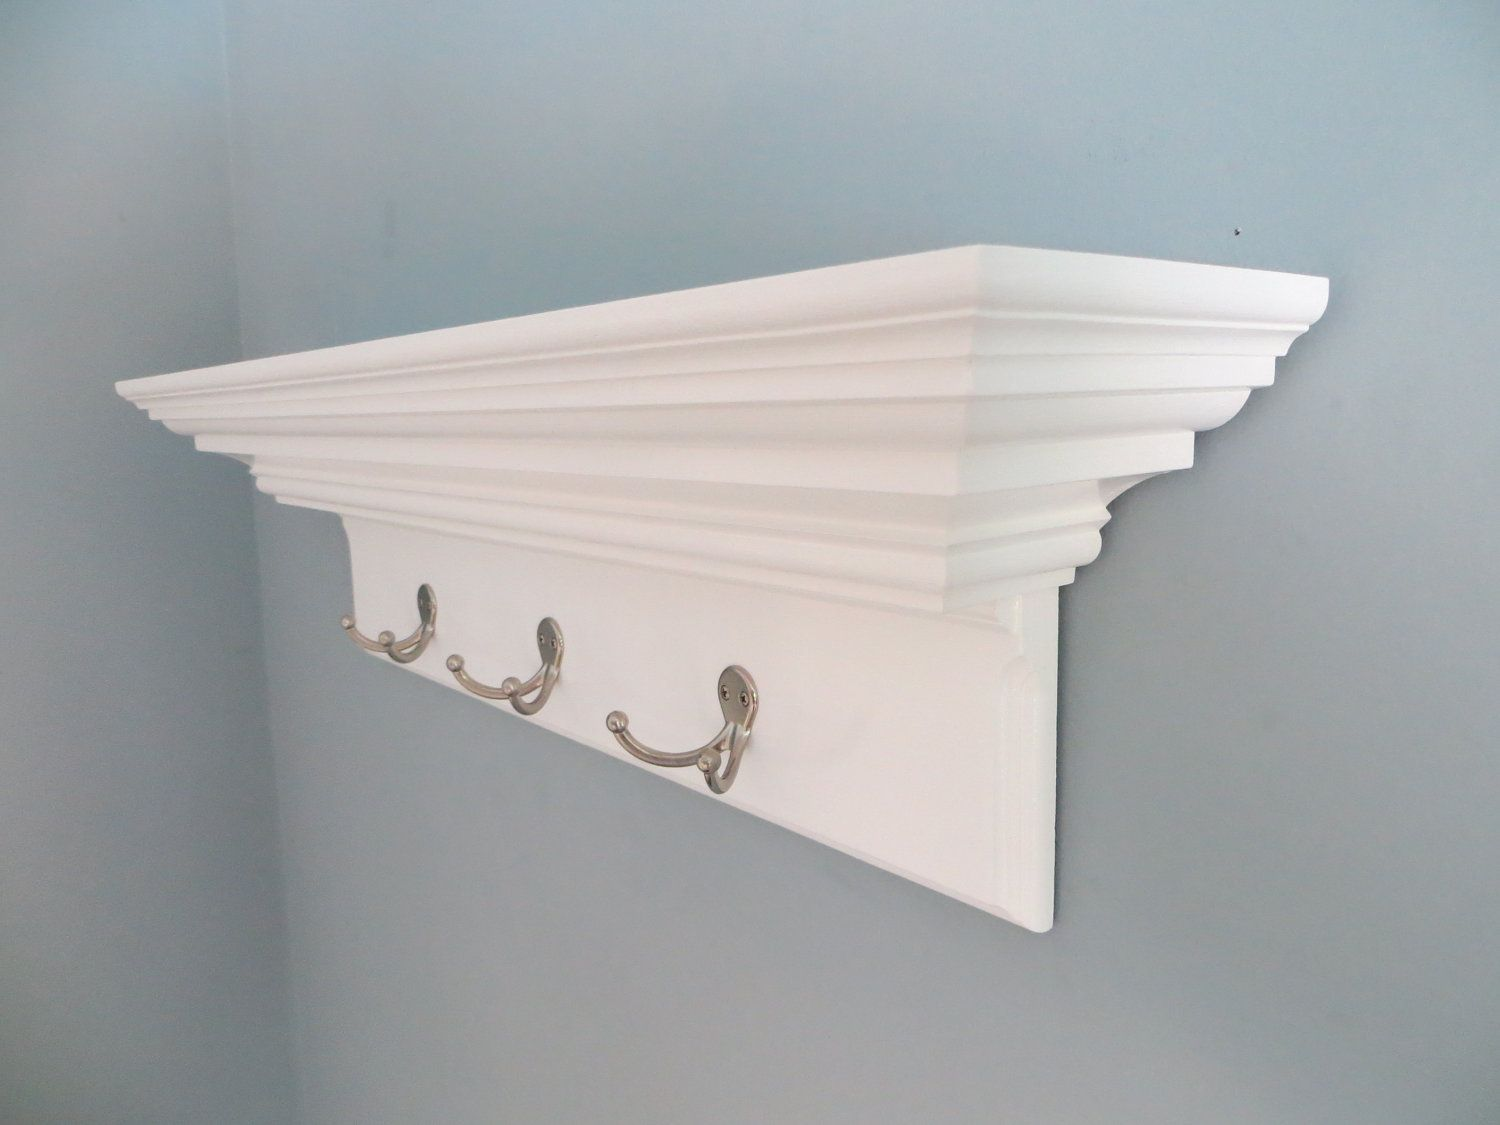 White Crown Molding Shelf With Silver Metal Hooks 3 With Images Floating Wall Shelves Bathroom Decor Accessories Woodworking Plans Shelves